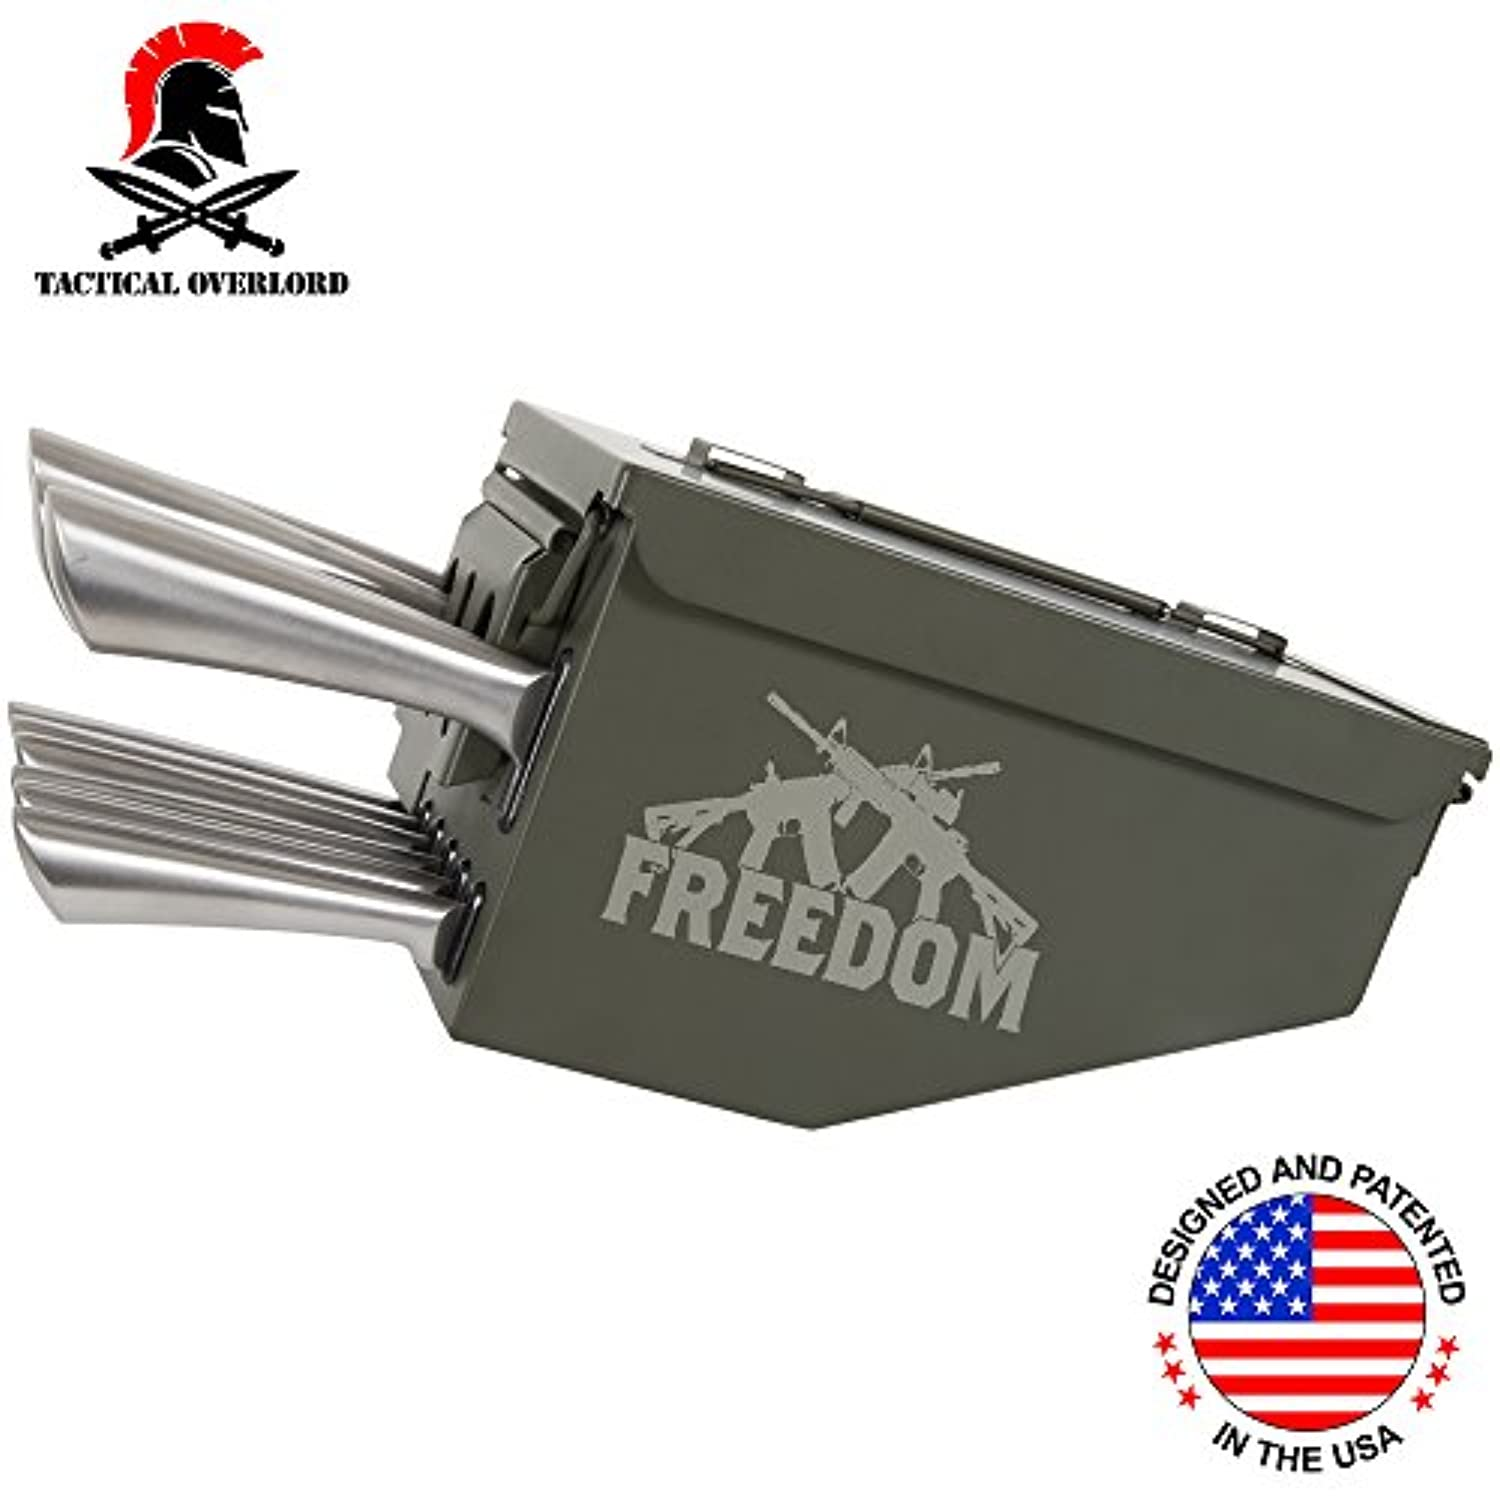 Tactical Overlord自由2 nd Amendment Engraved 10 Piece Ammo CanボックスナイフブロックCulteryセットストレージオーガナイザー